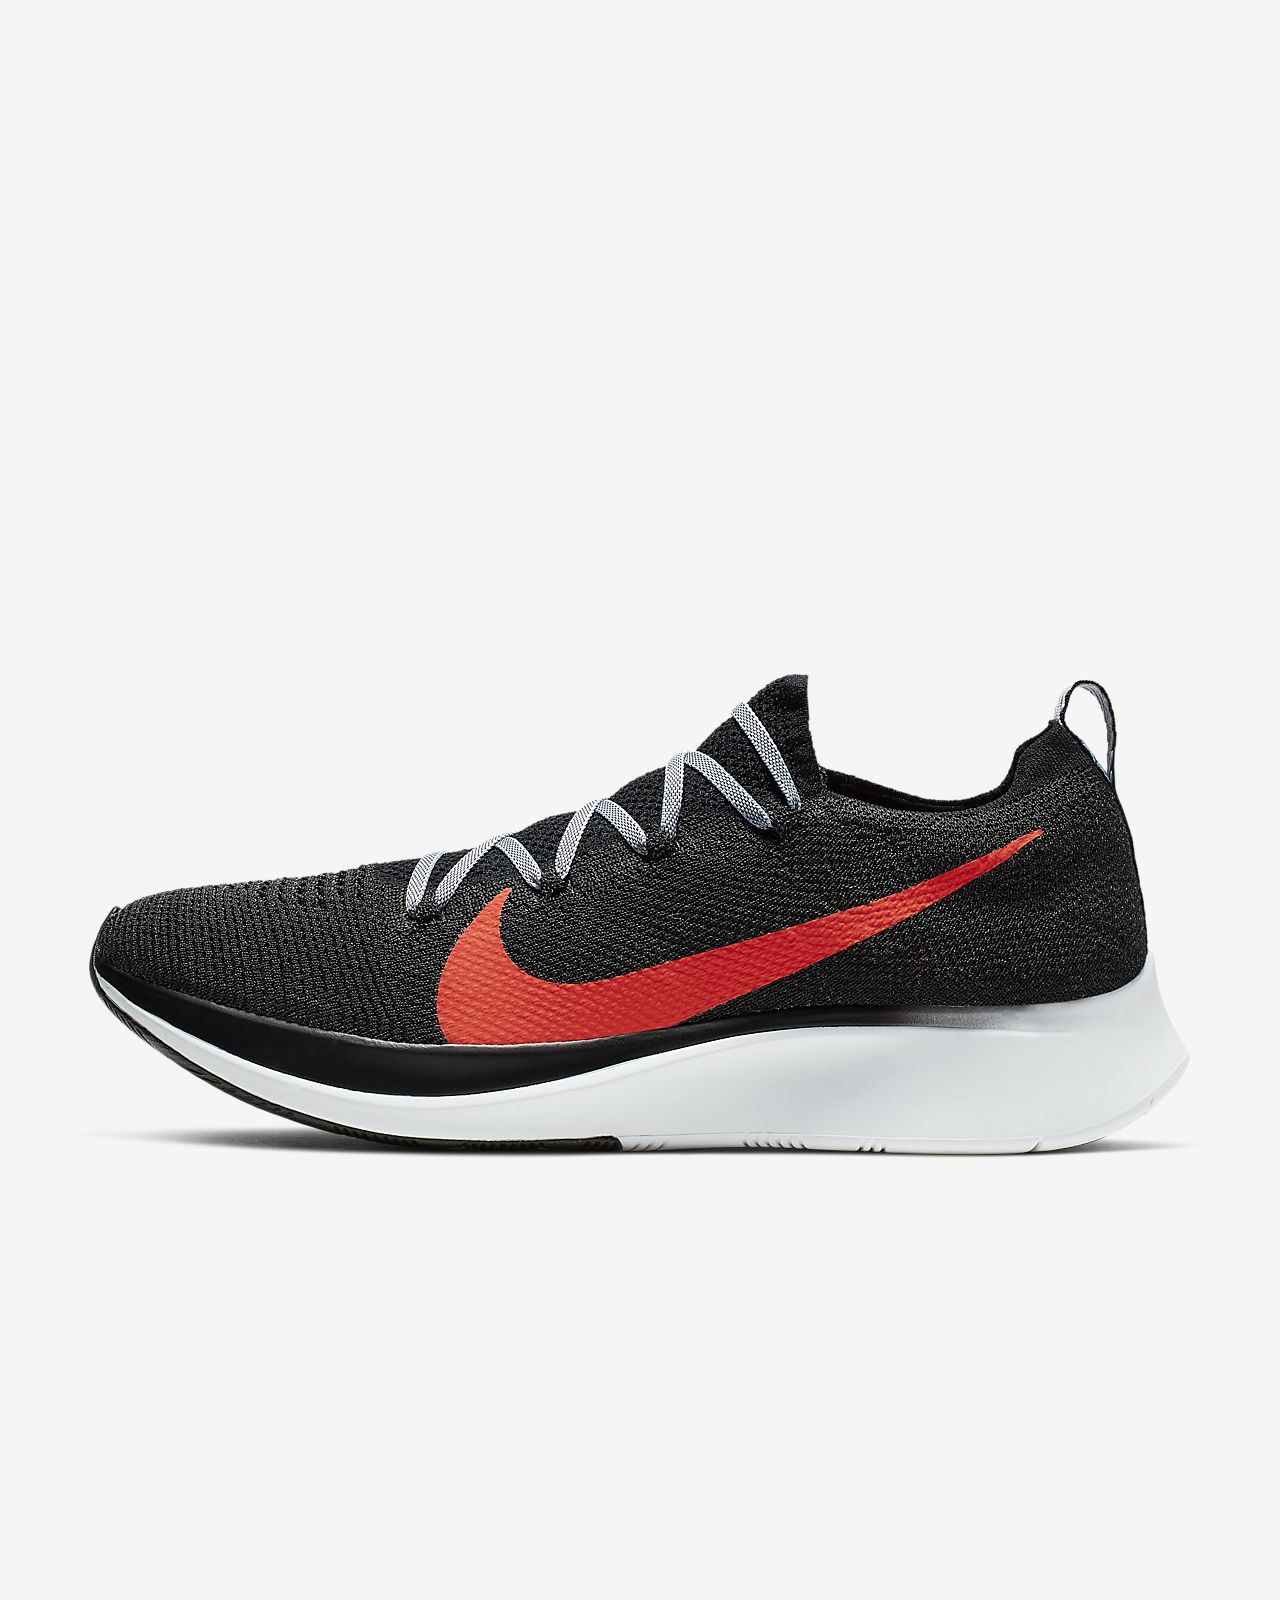 11bb7863481 Chaussure de running Nike Zoom Fly Flyknit pour Homme. Nike.com FR